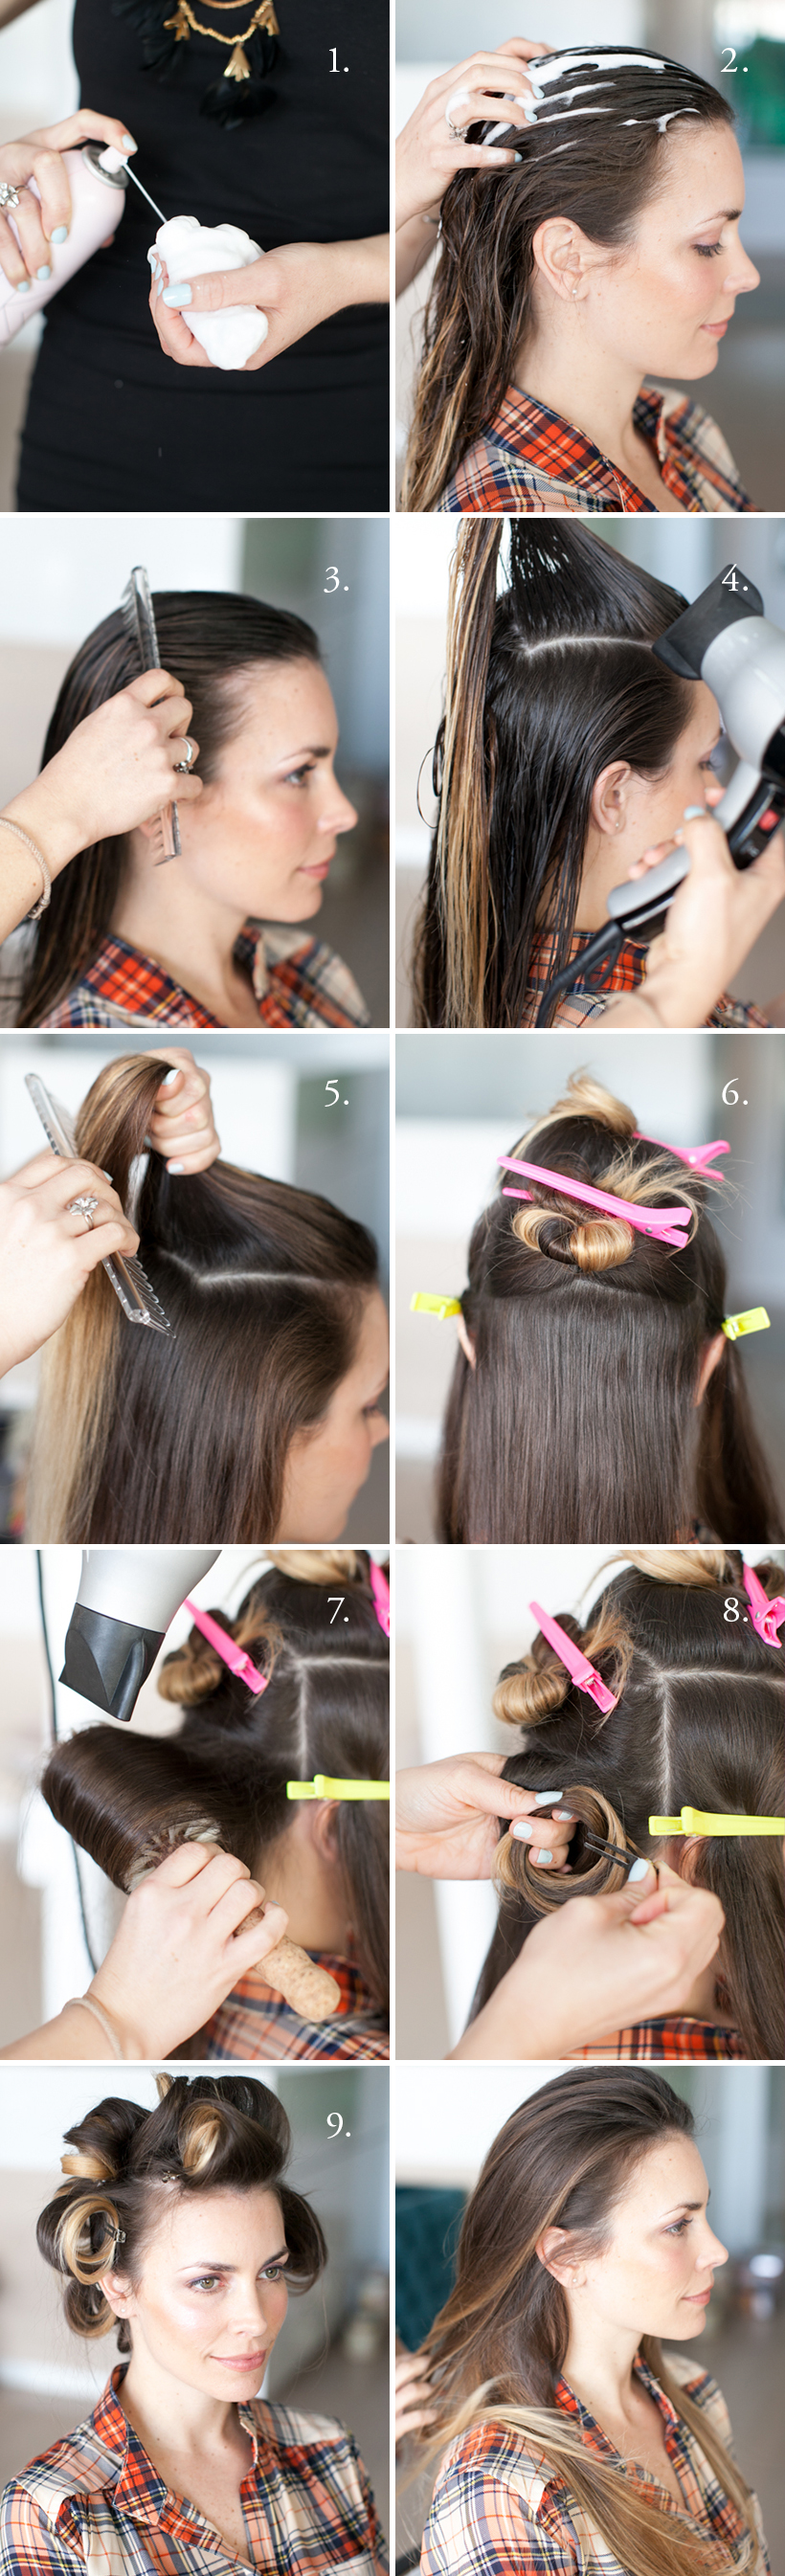 DIY Blowout Tutorial | Camille Styles